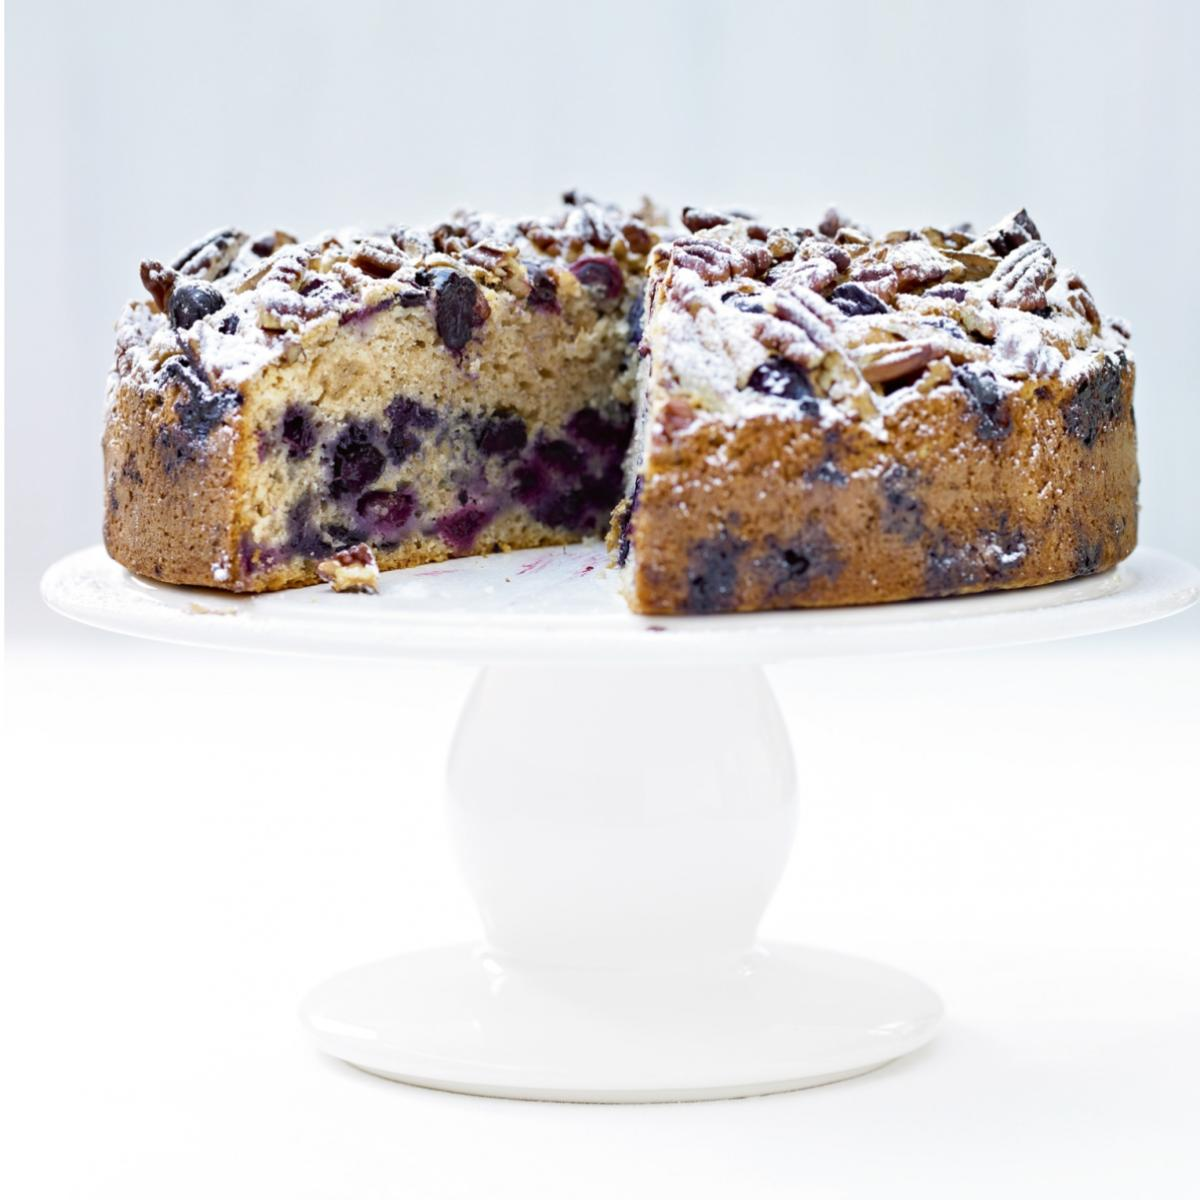 A picture of Delia's Blueberry and Pecan Muffin Cake recipe